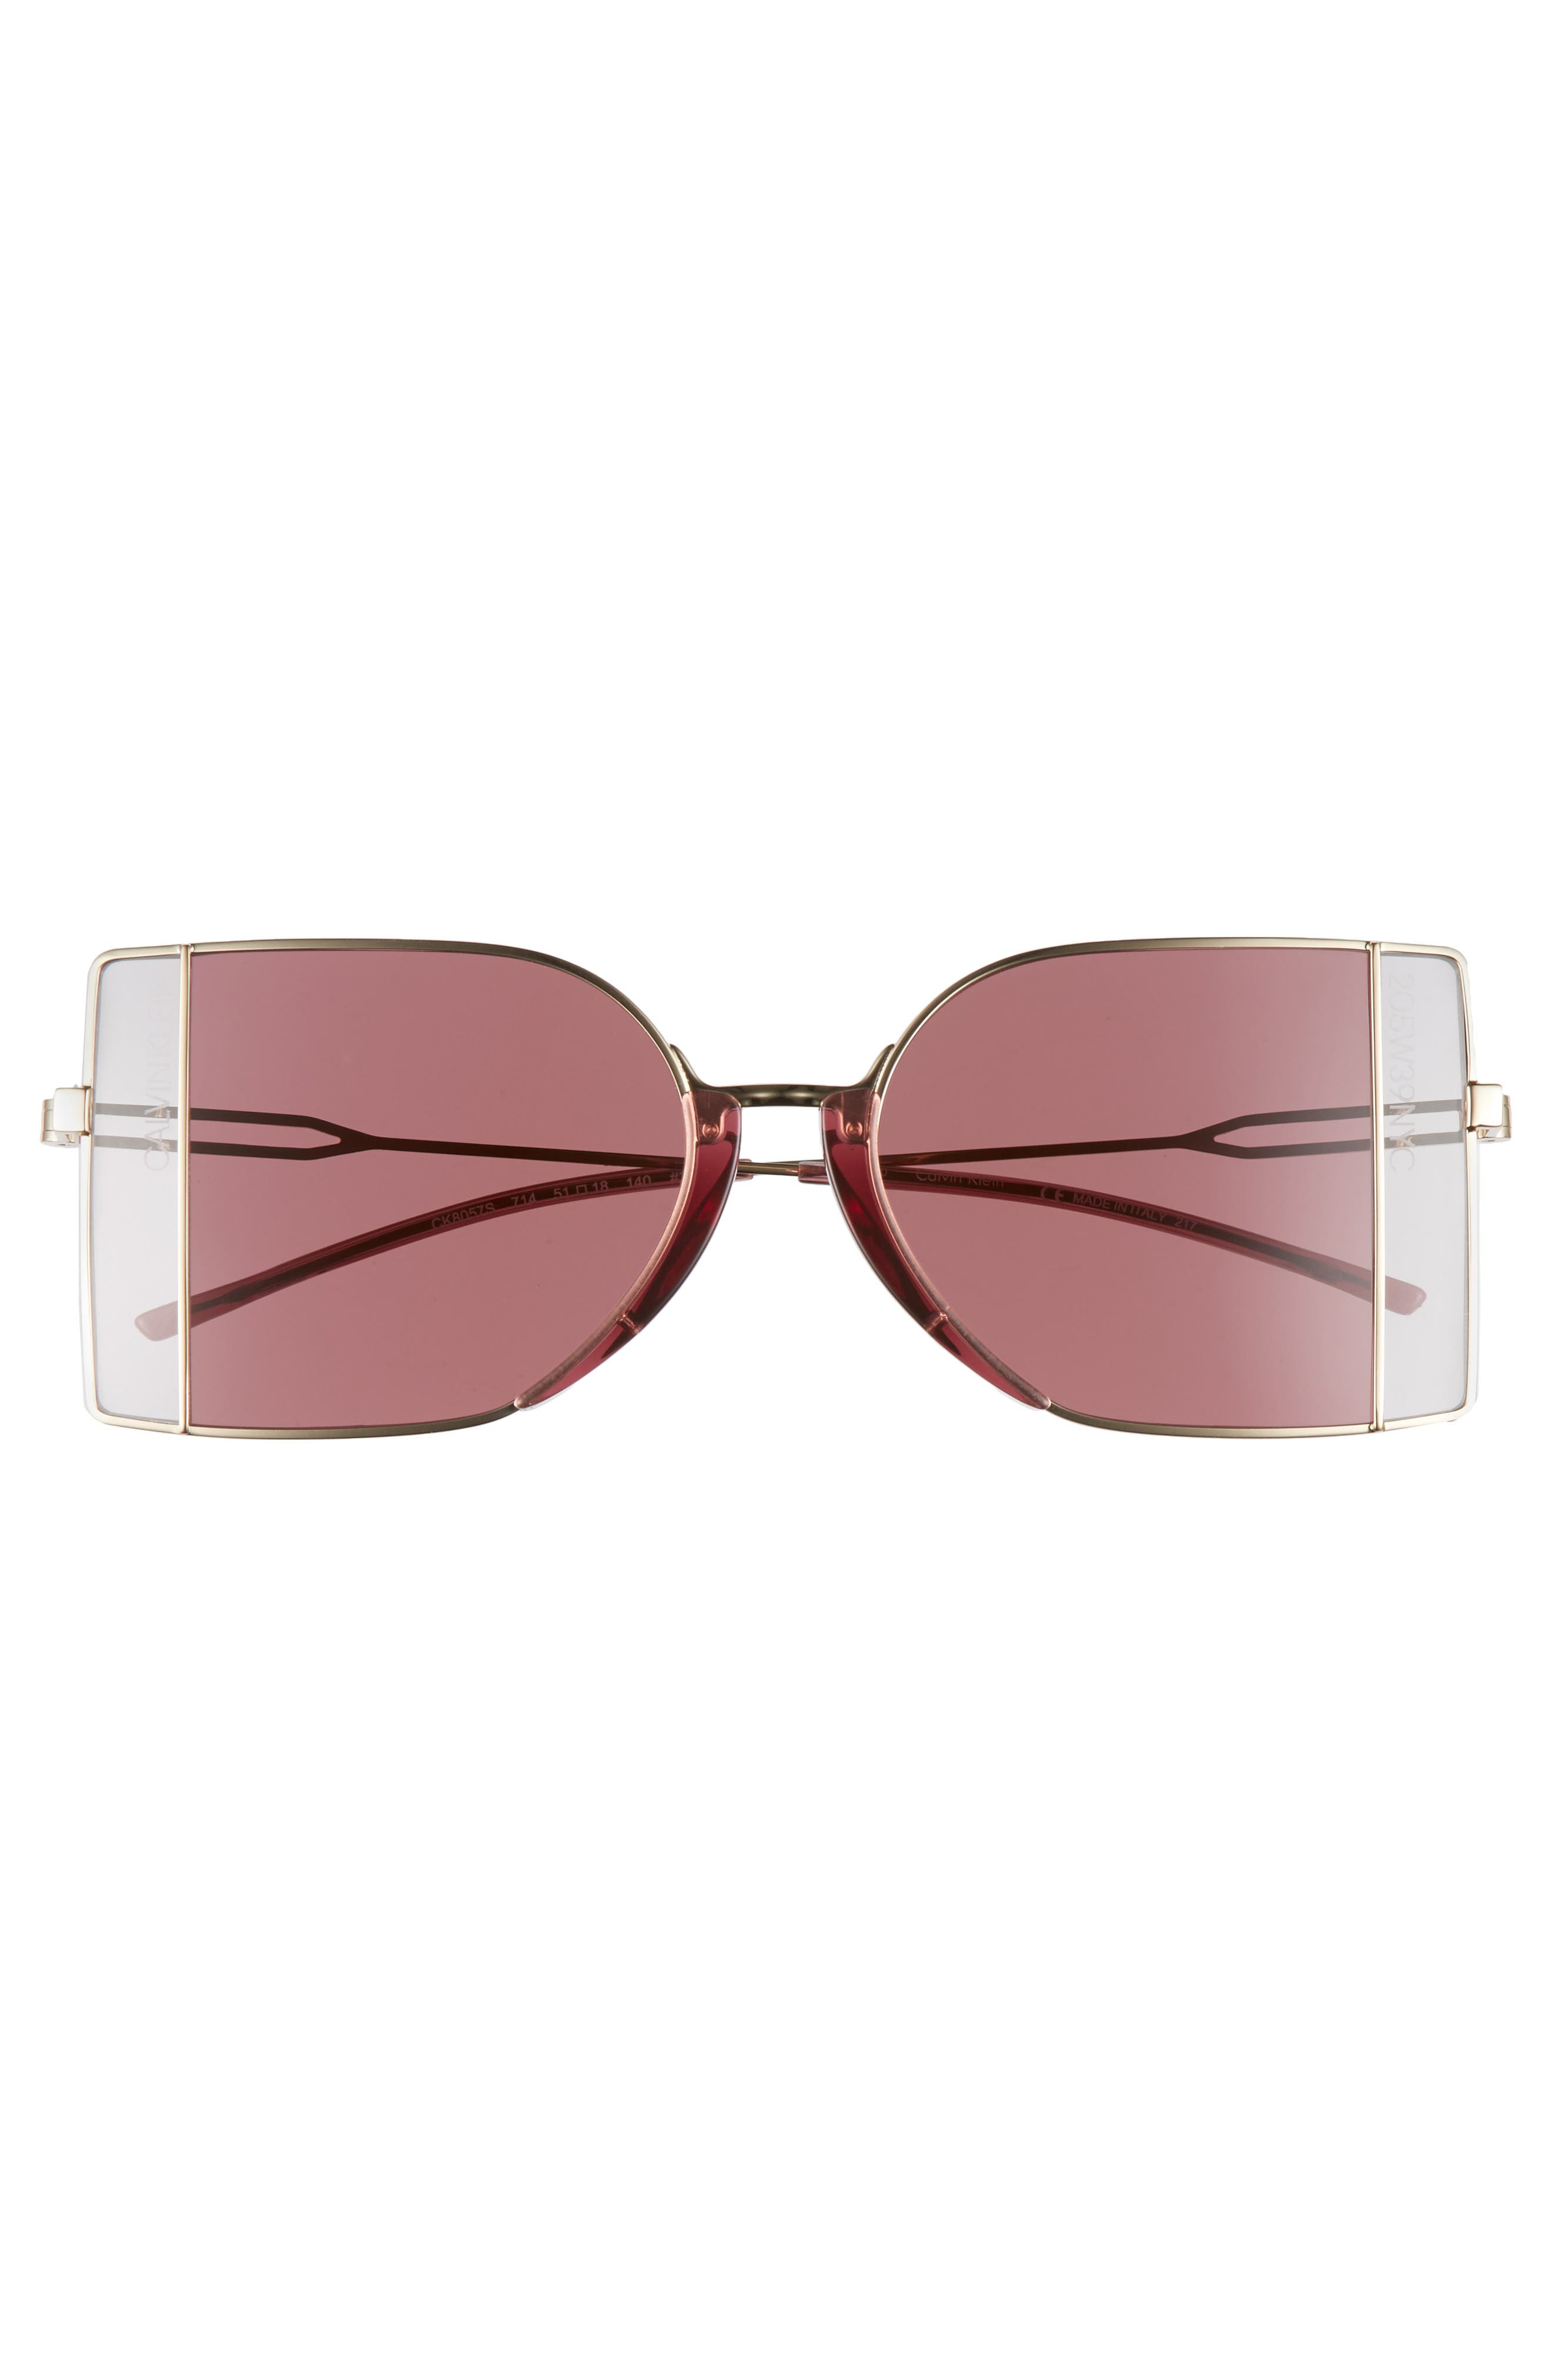 Alternate Image 3  - CALVIN KLEIN 205W39NYC 51mm Butterfly Sunglasses